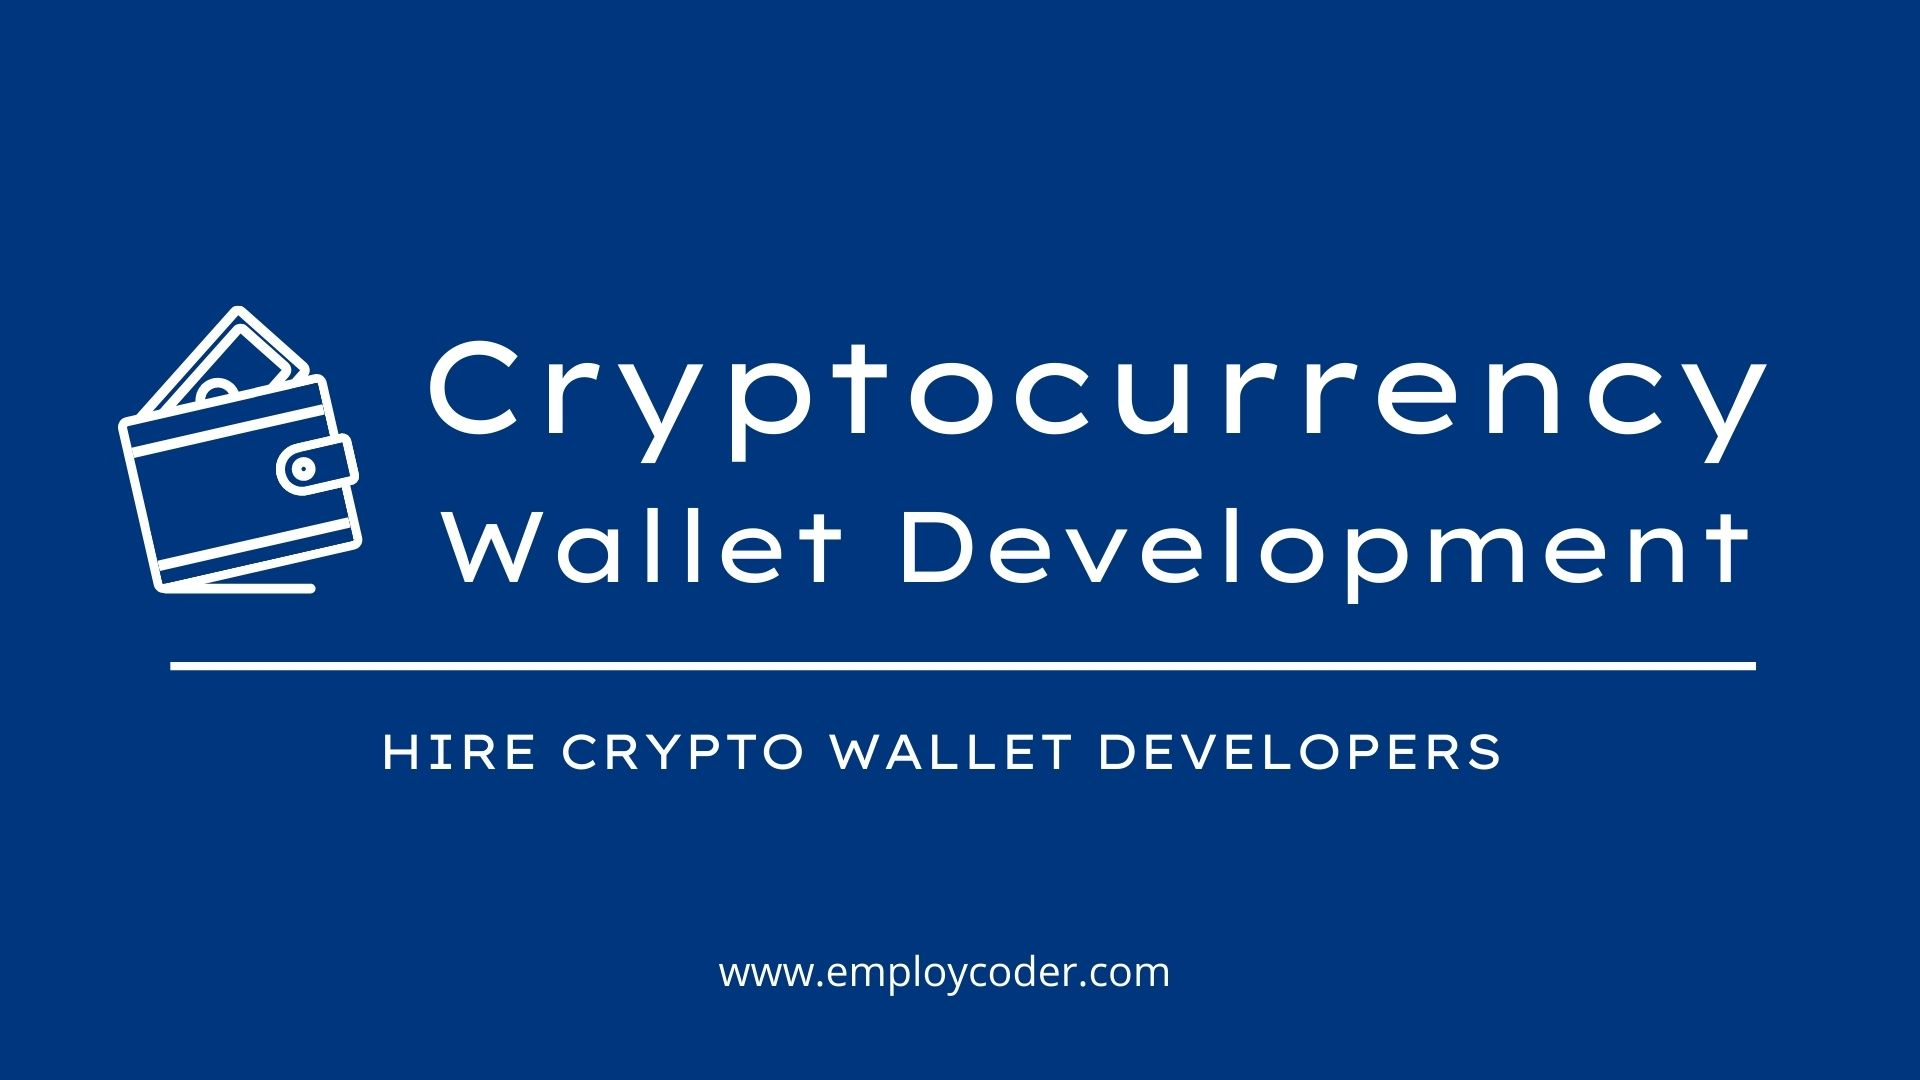 Hire Crypto Wallet Developers To Create Ultra-Secure Cryptocurrency Wallets